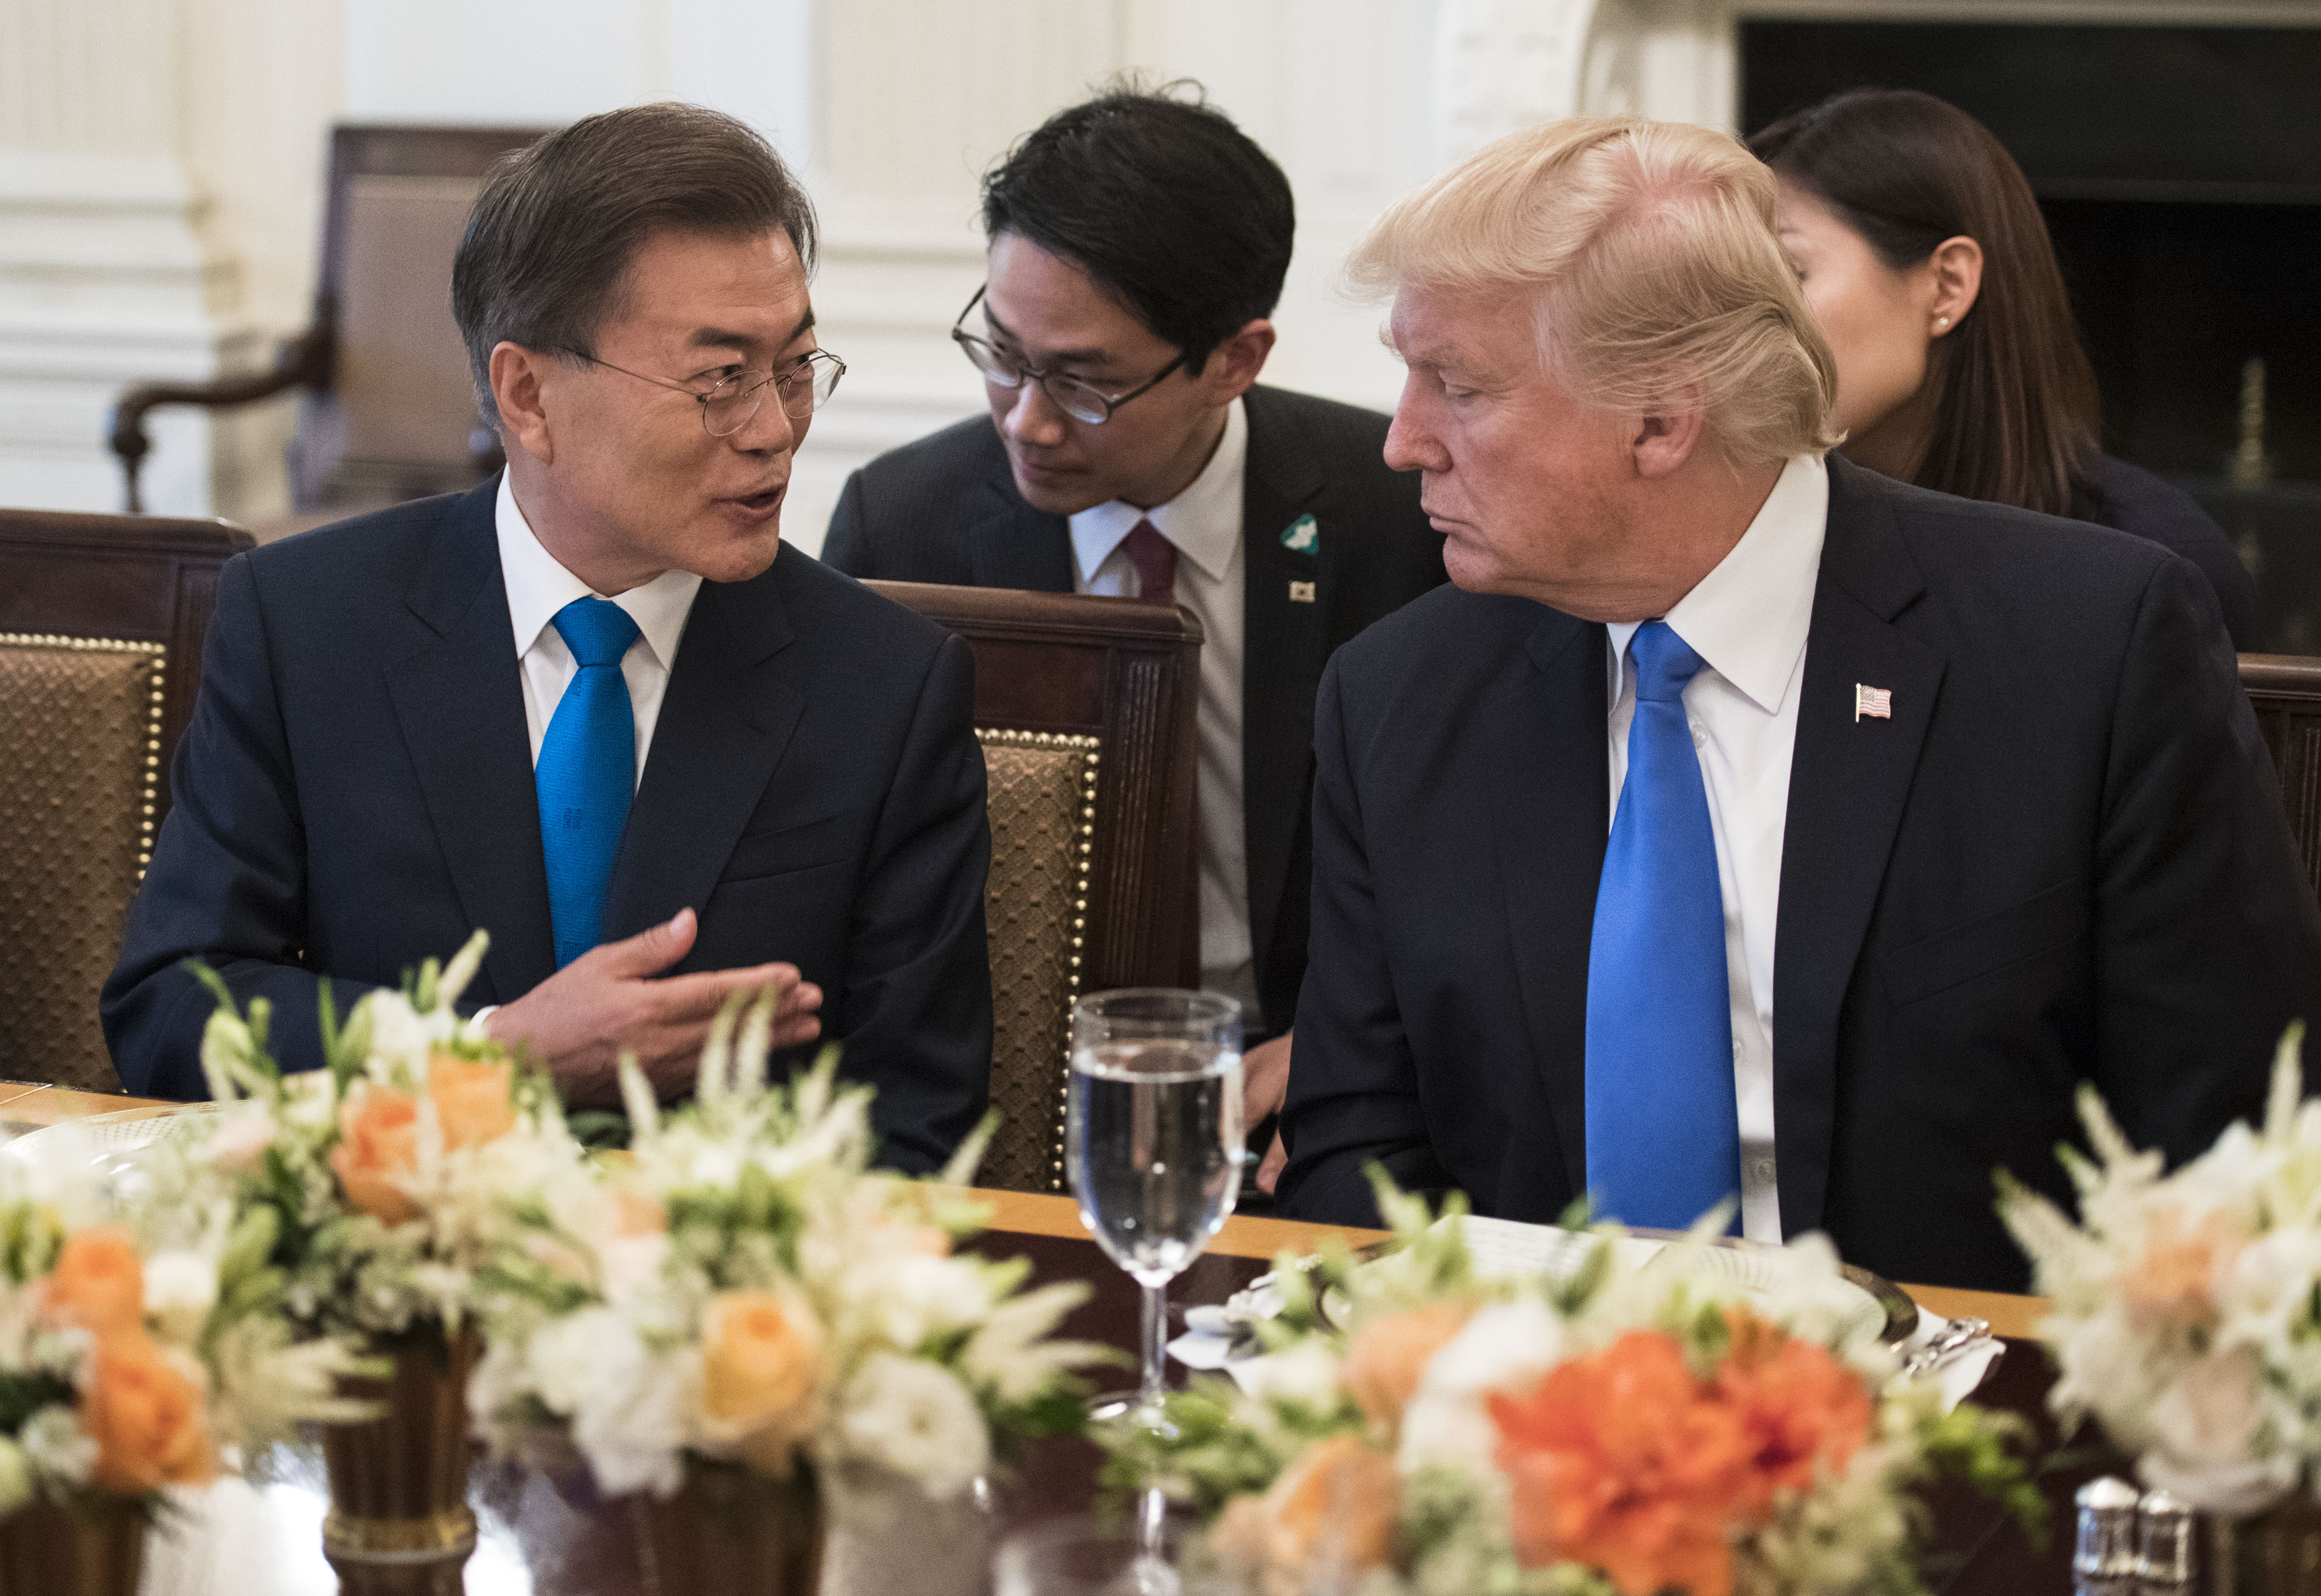 US President Donald Trump and South Korean President Moon Jae-in address the media prior to dinner at the White House June 29, 2017 in Washington, D.C.